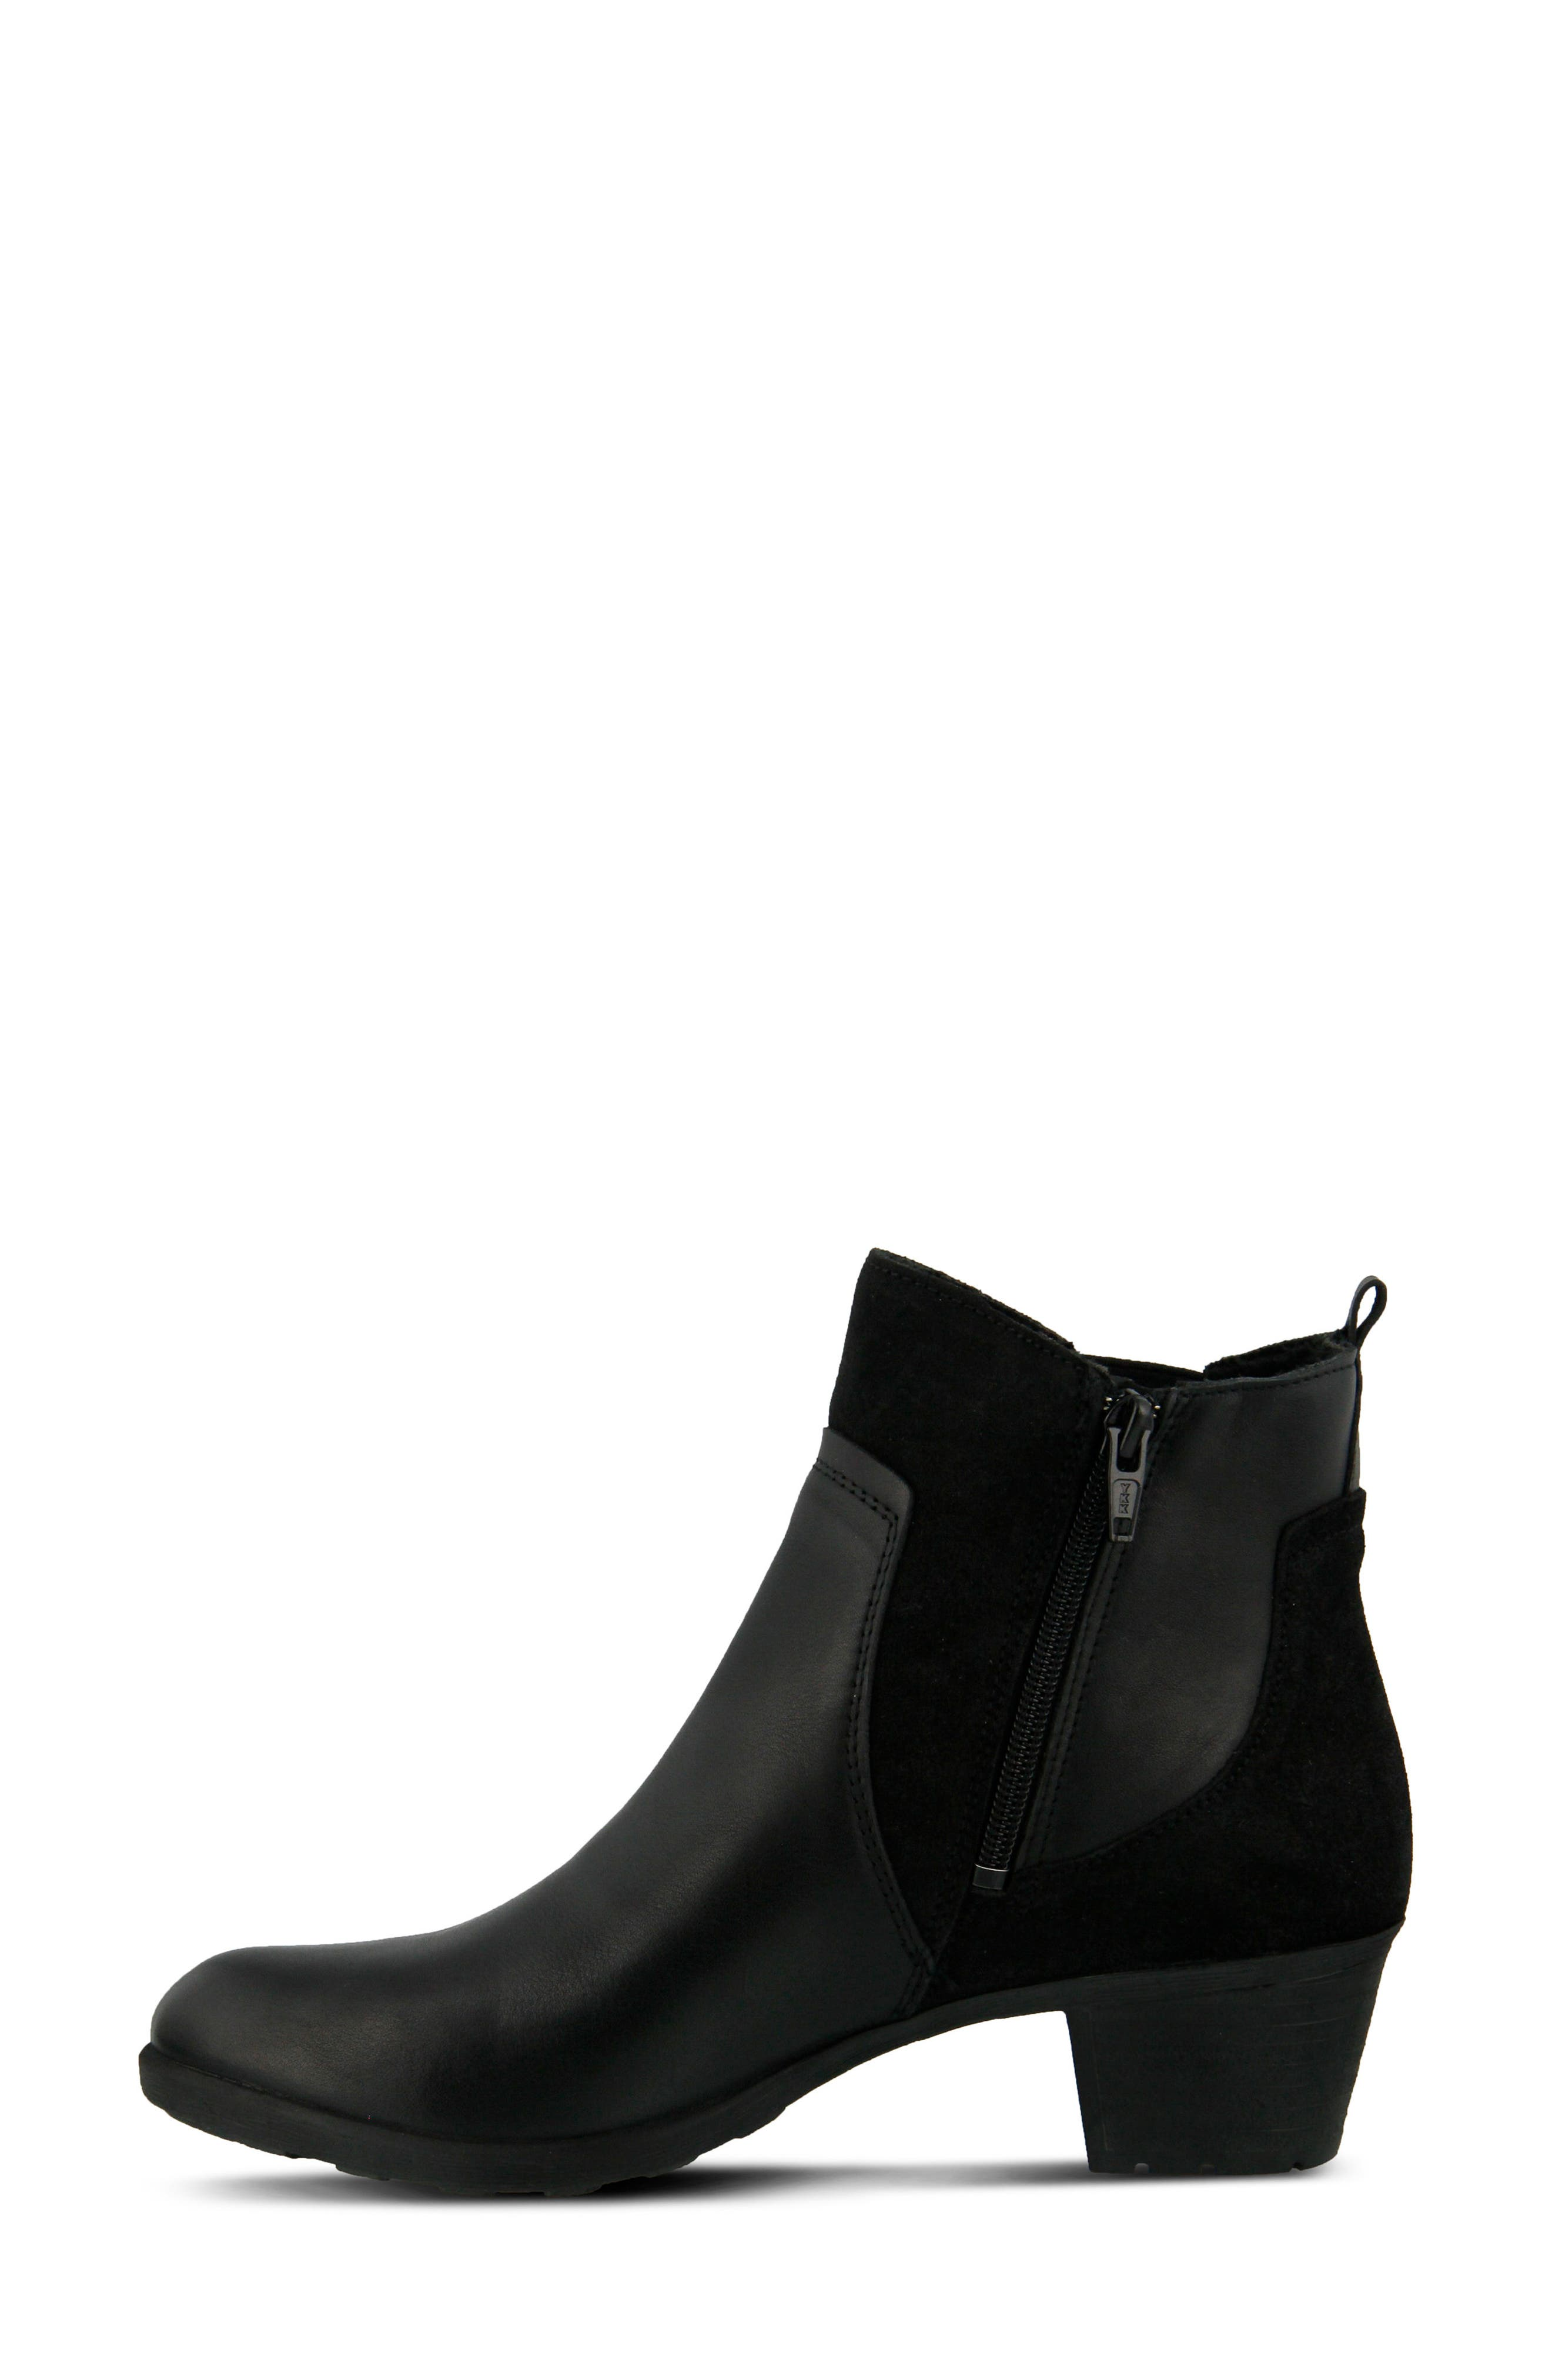 Pousada Bootie,                             Alternate thumbnail 2, color,                             Black Leather